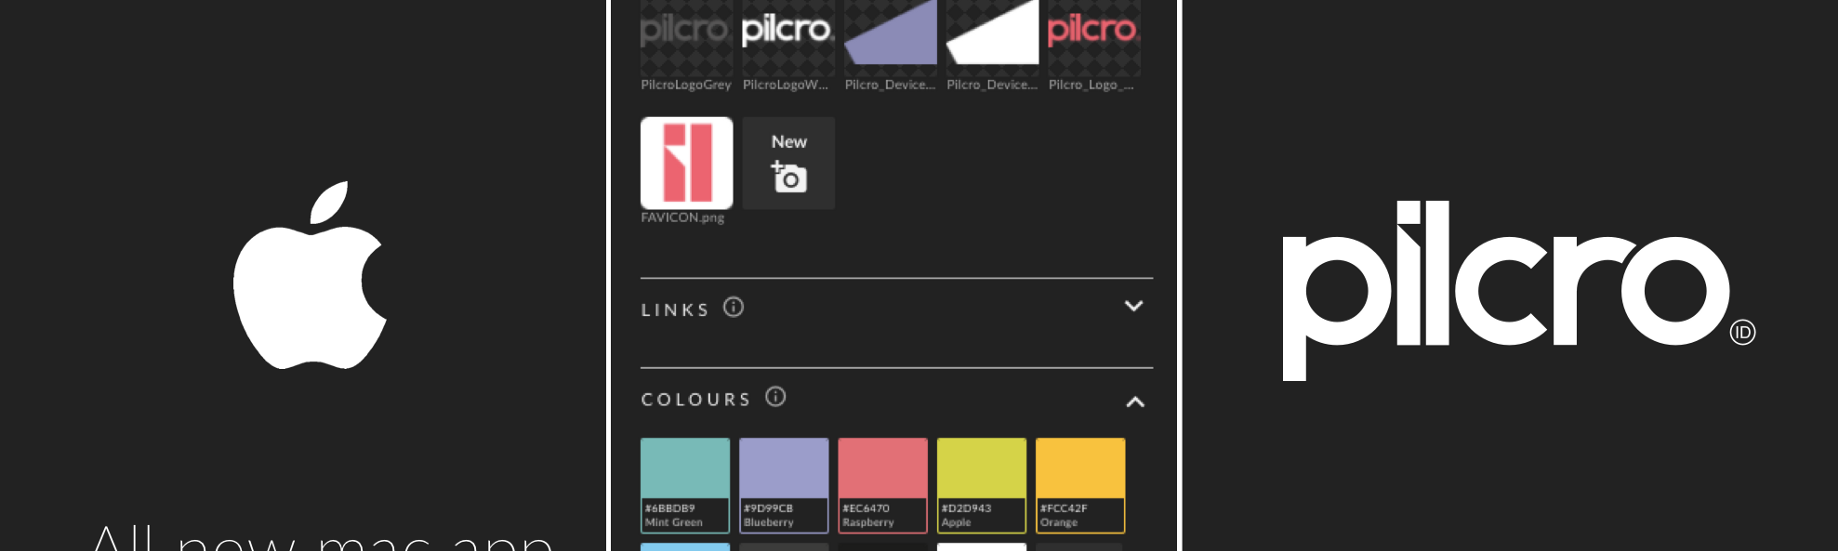 Pilcro feature release: all new Mac App with fonts - Pilcro